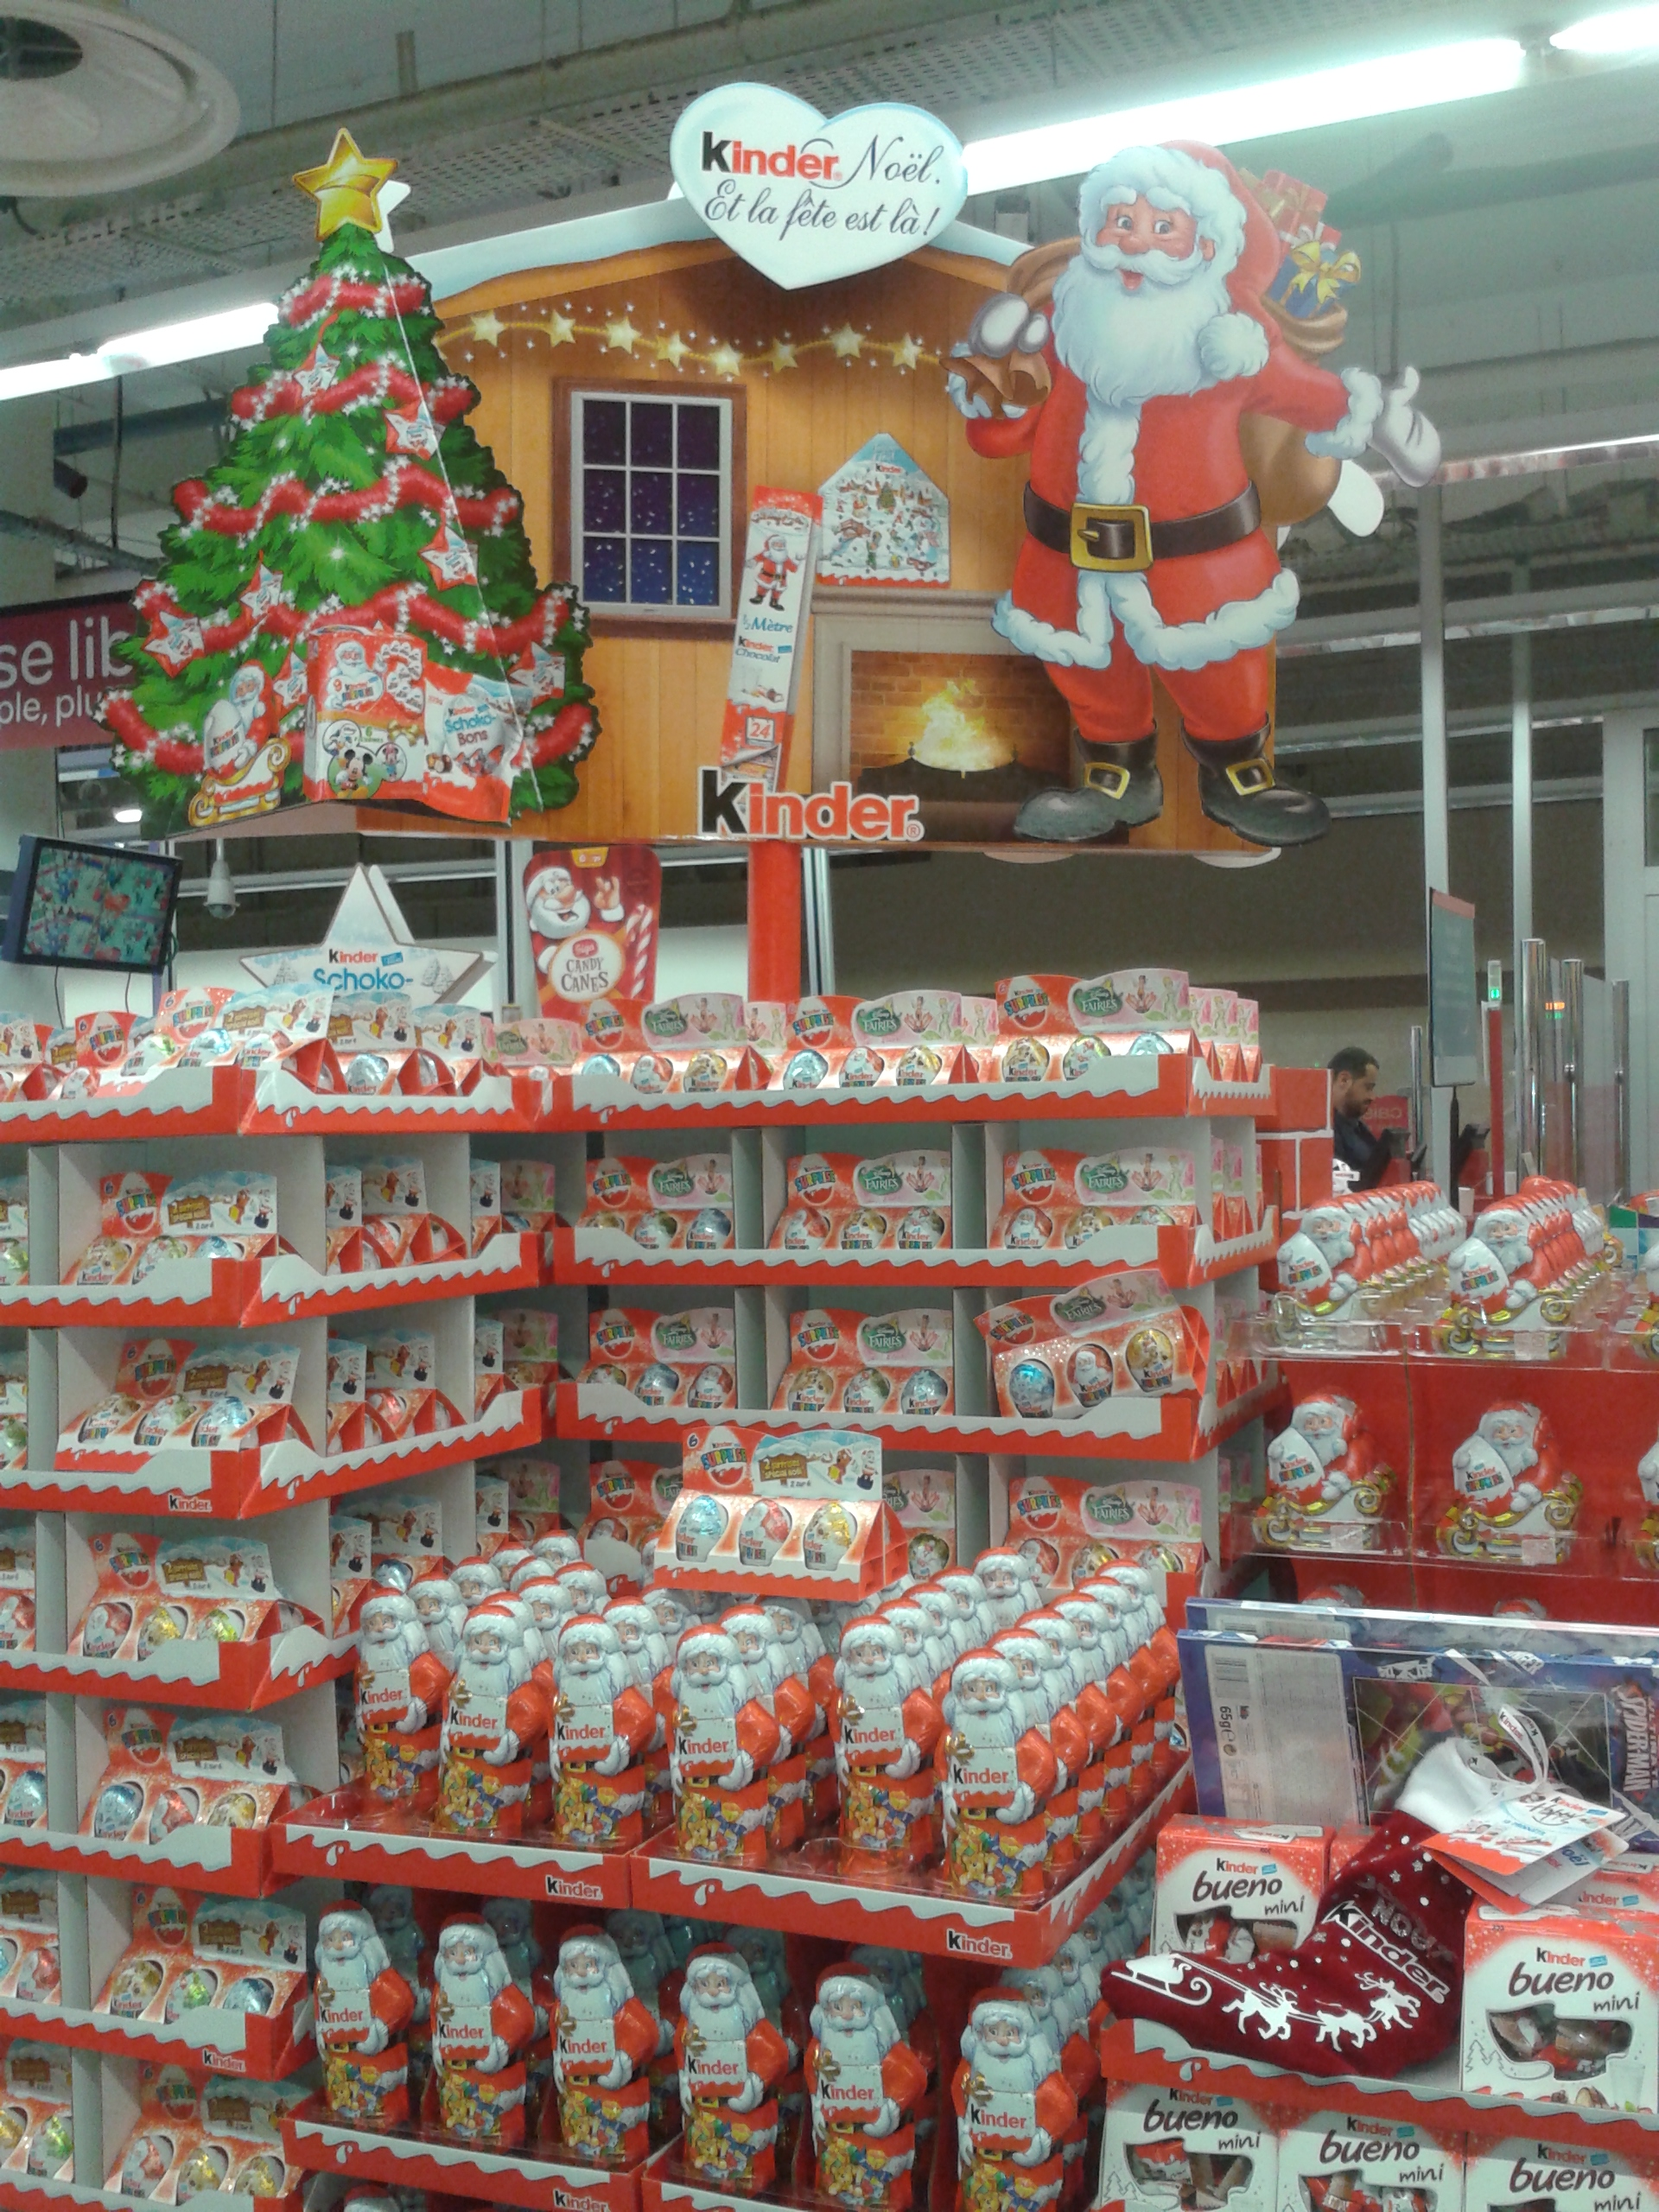 Le spectacle des chocolats de no l 18marketing - Decoration de noel carrefour ...